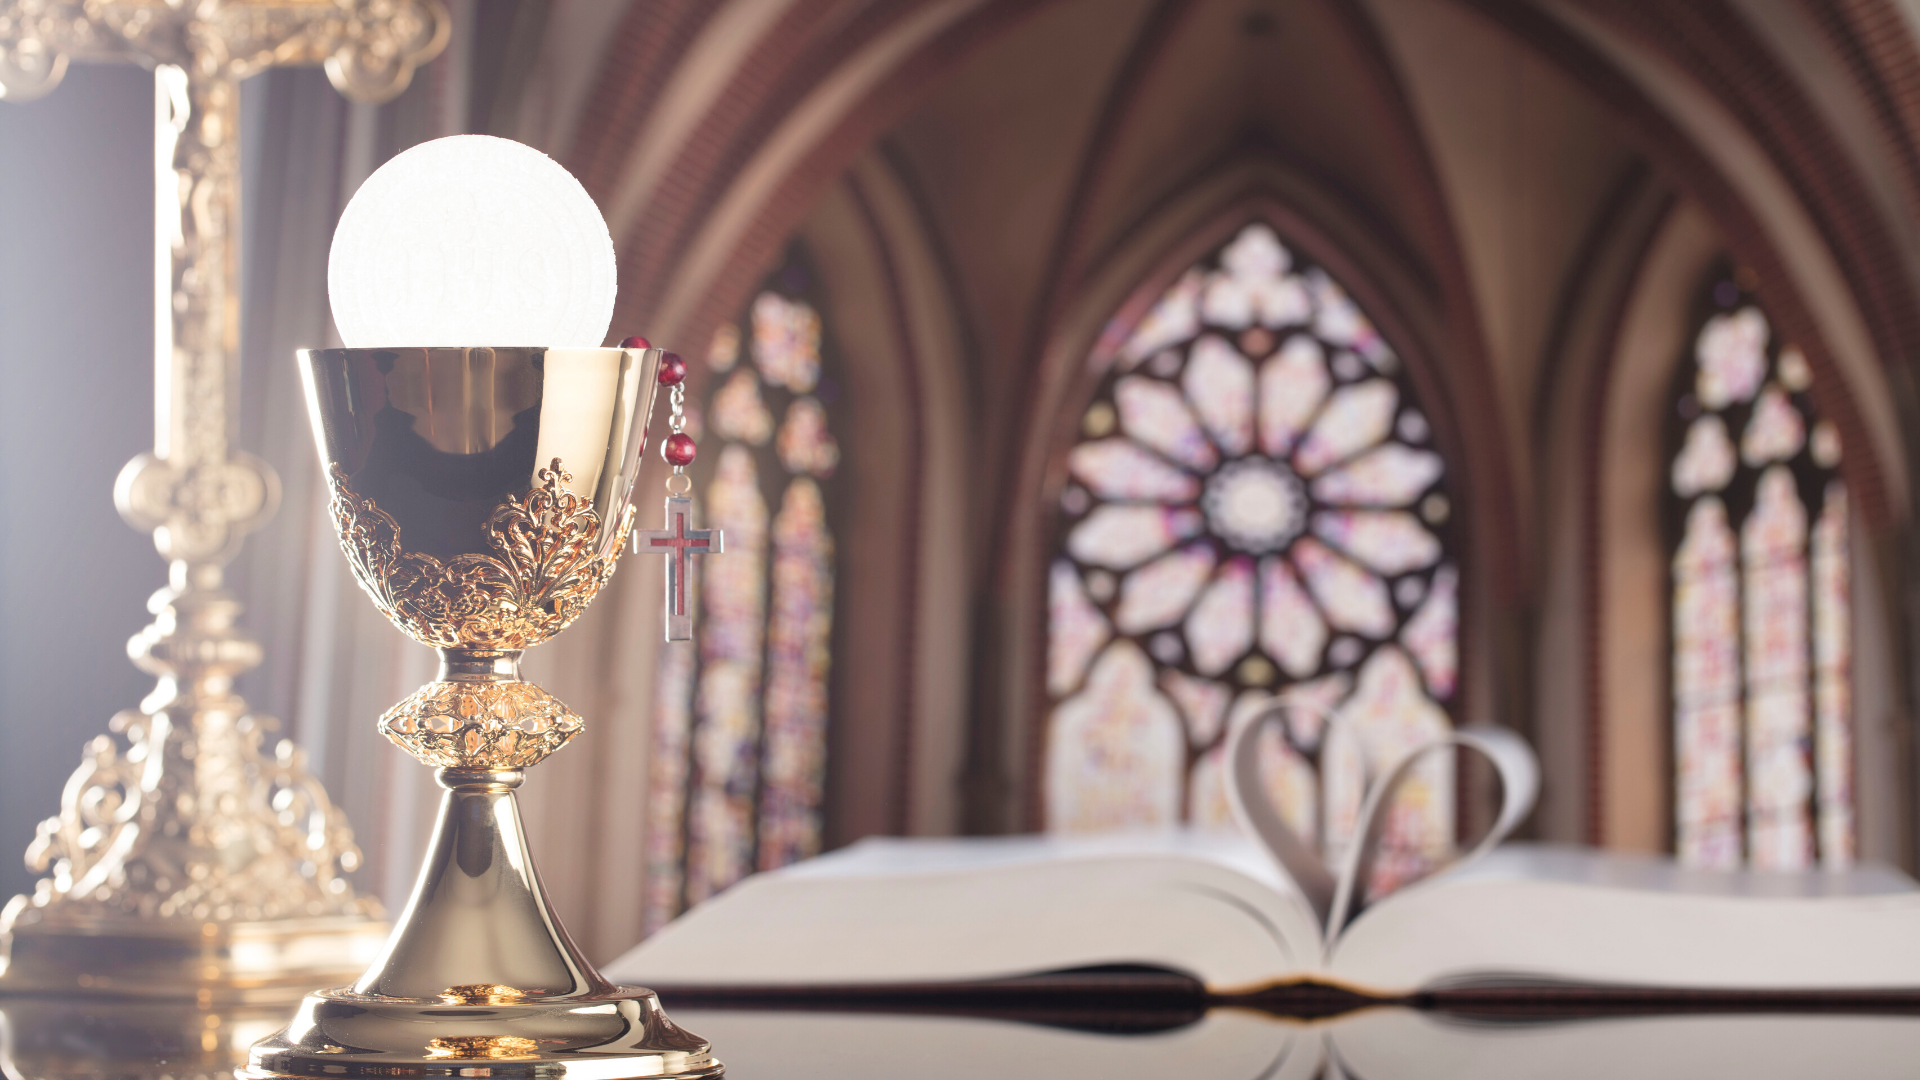 Photo of a chalice inside a Catholic church